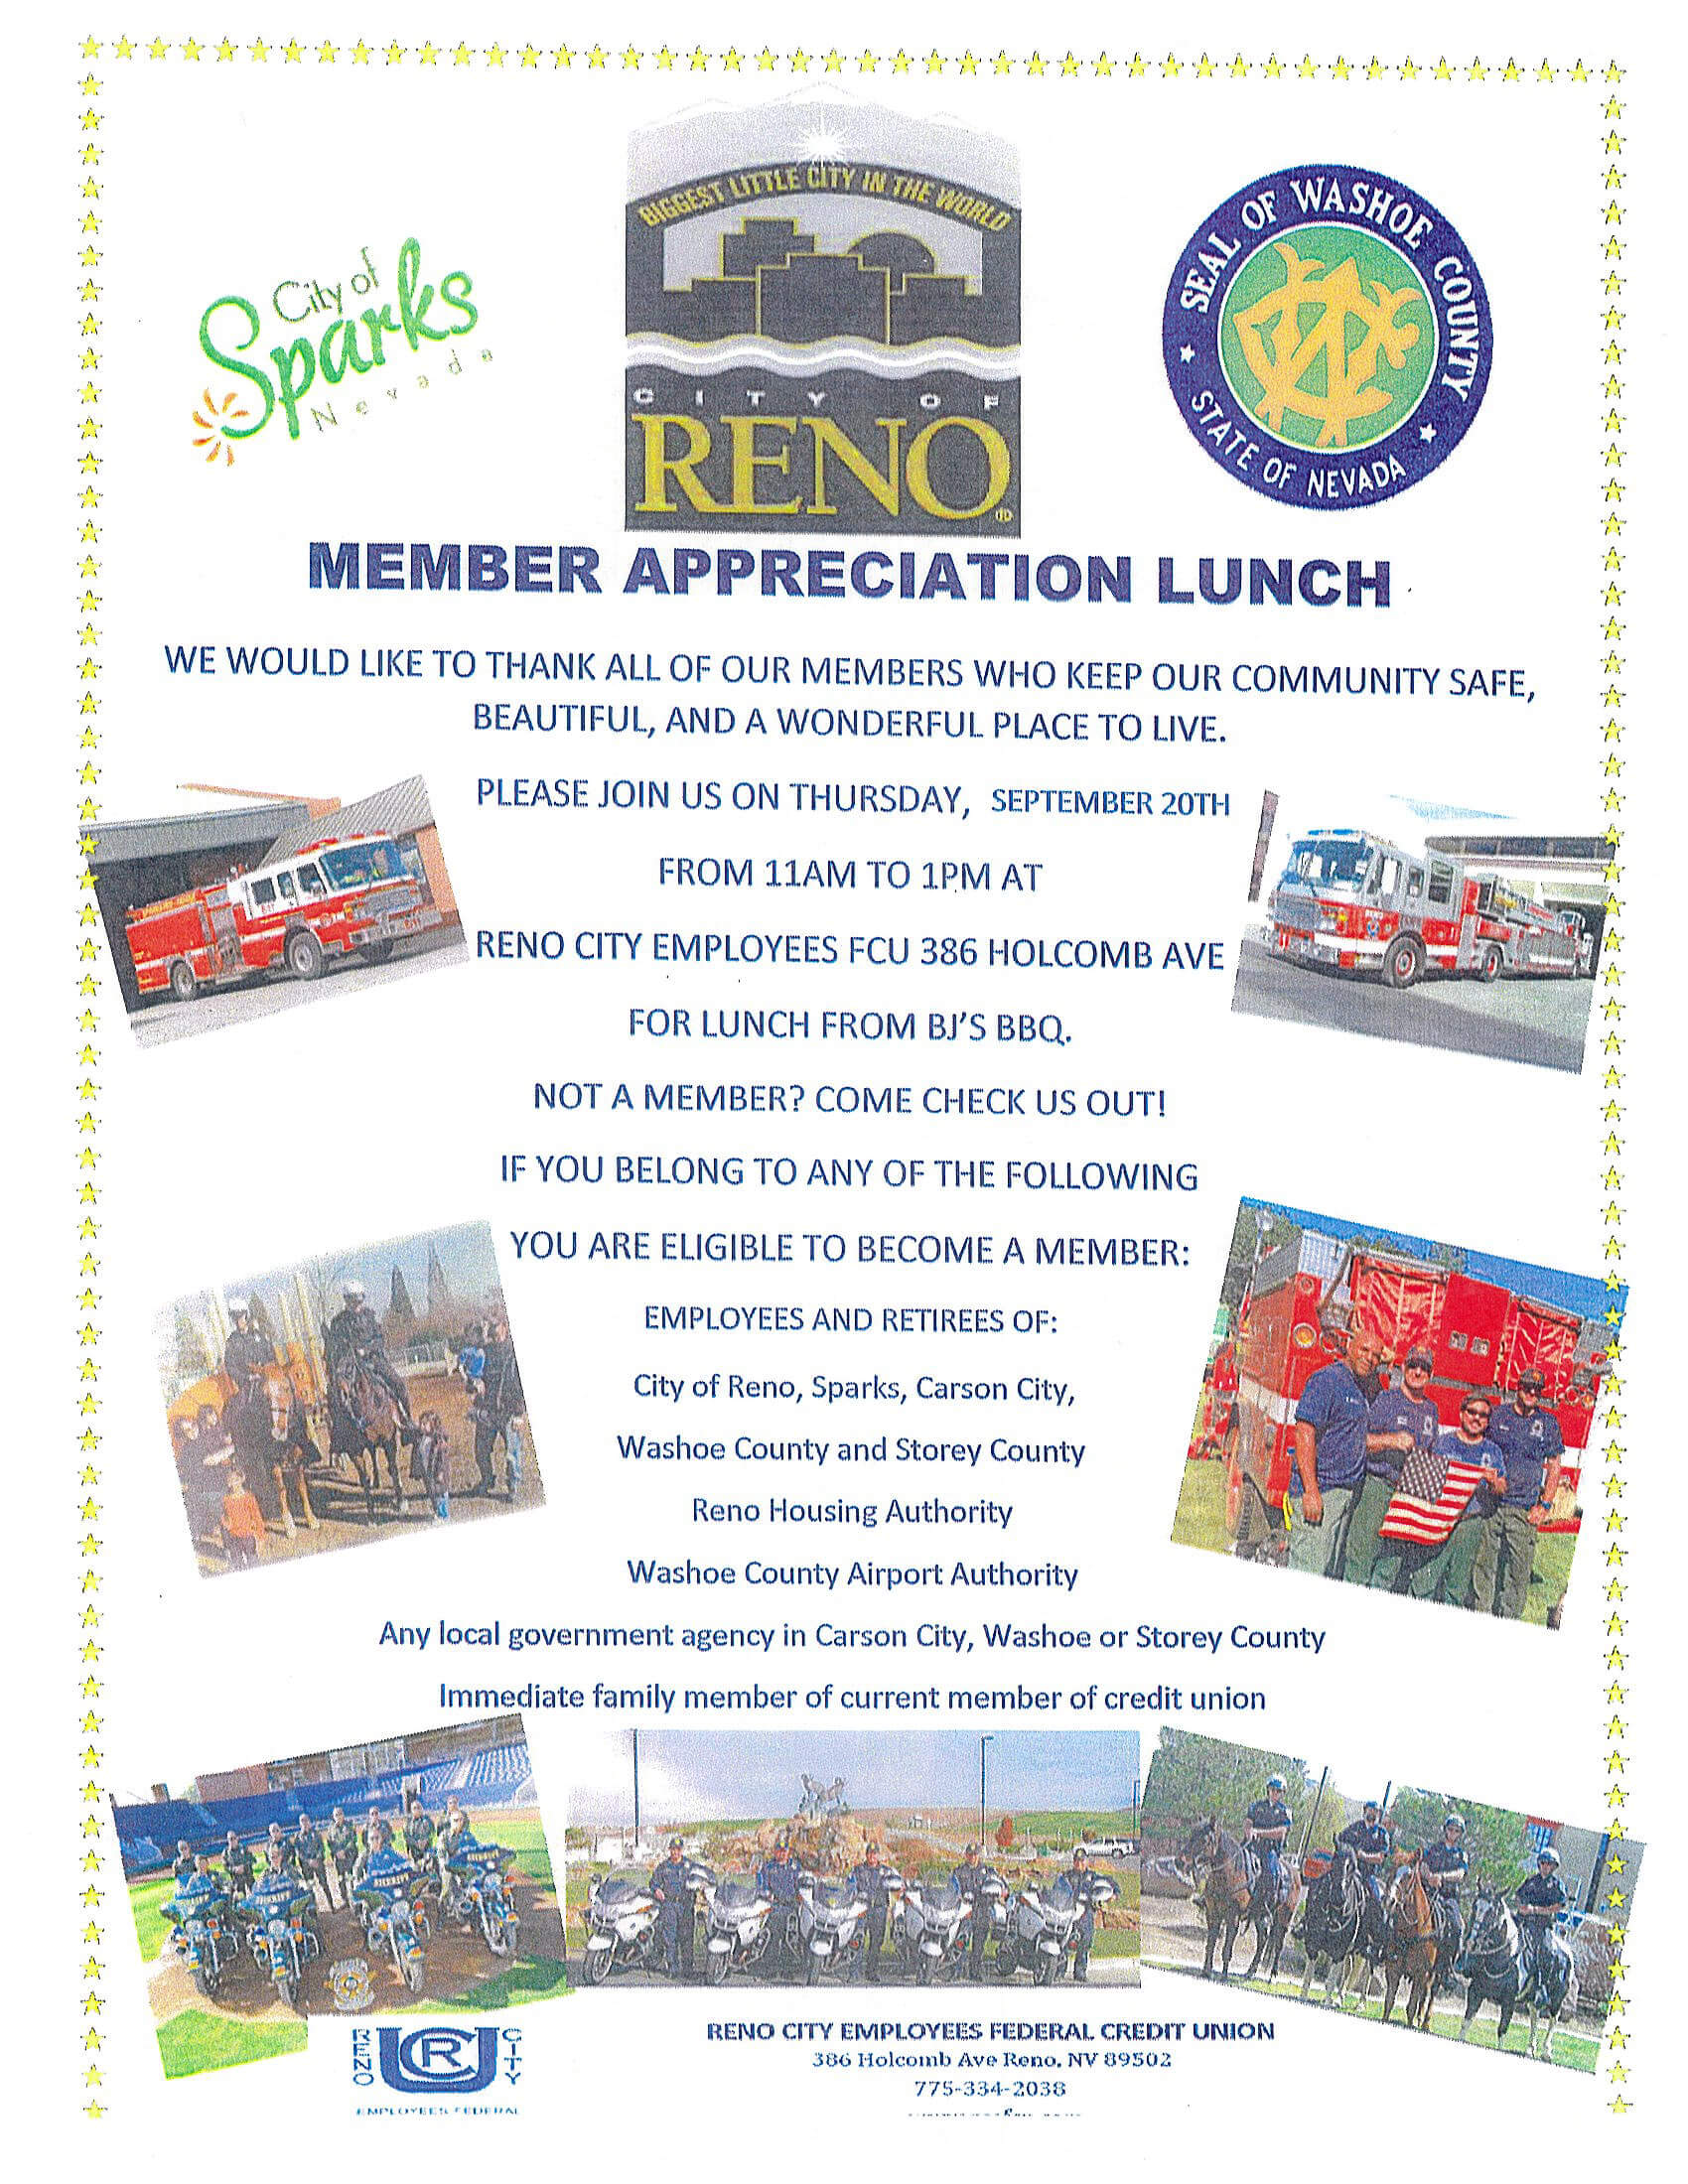 Member Appreciation Lunch